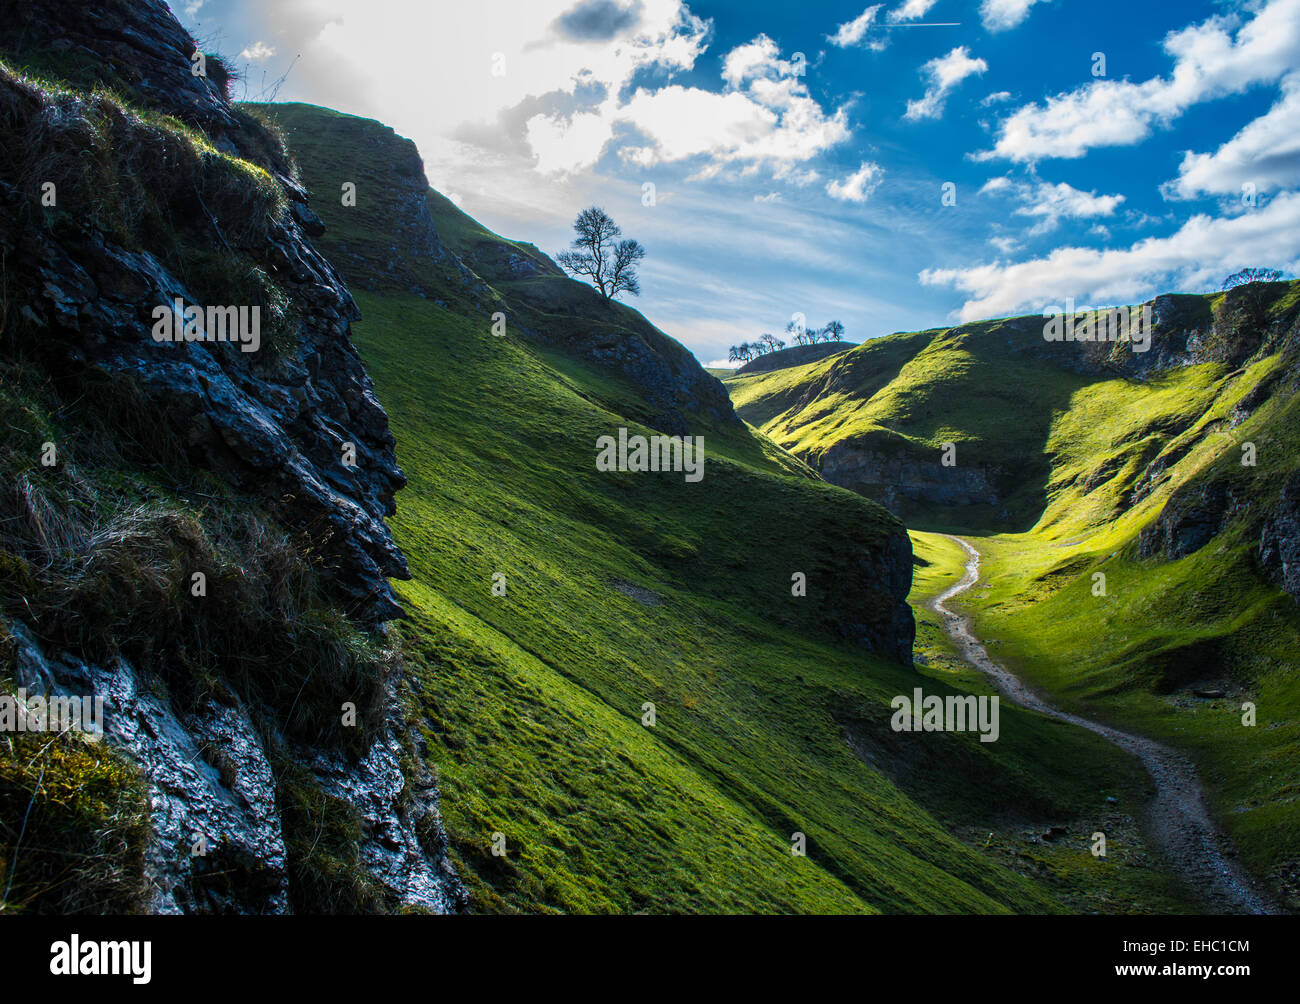 Hiking trails near Castleton, Peak district, England on a bright clear spring day. - Stock Image